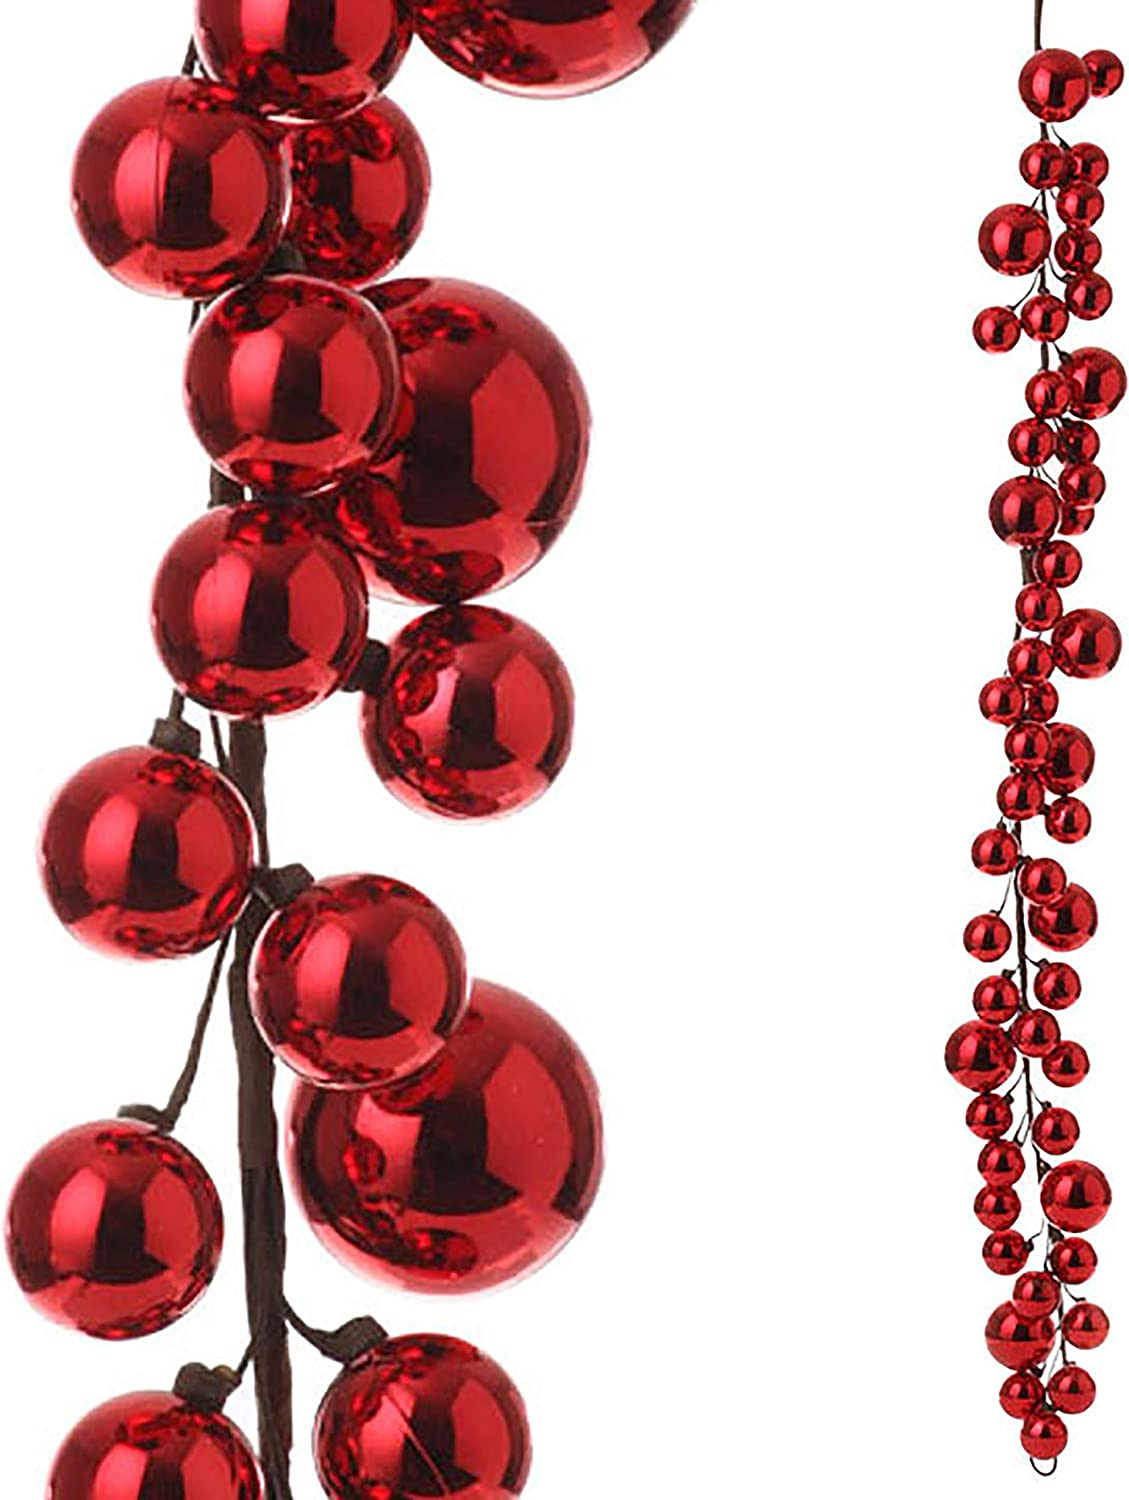 RAZ Imports - 4' Christmas Red Garland Max 72% OFF New products, world's highest quality popular! Ball